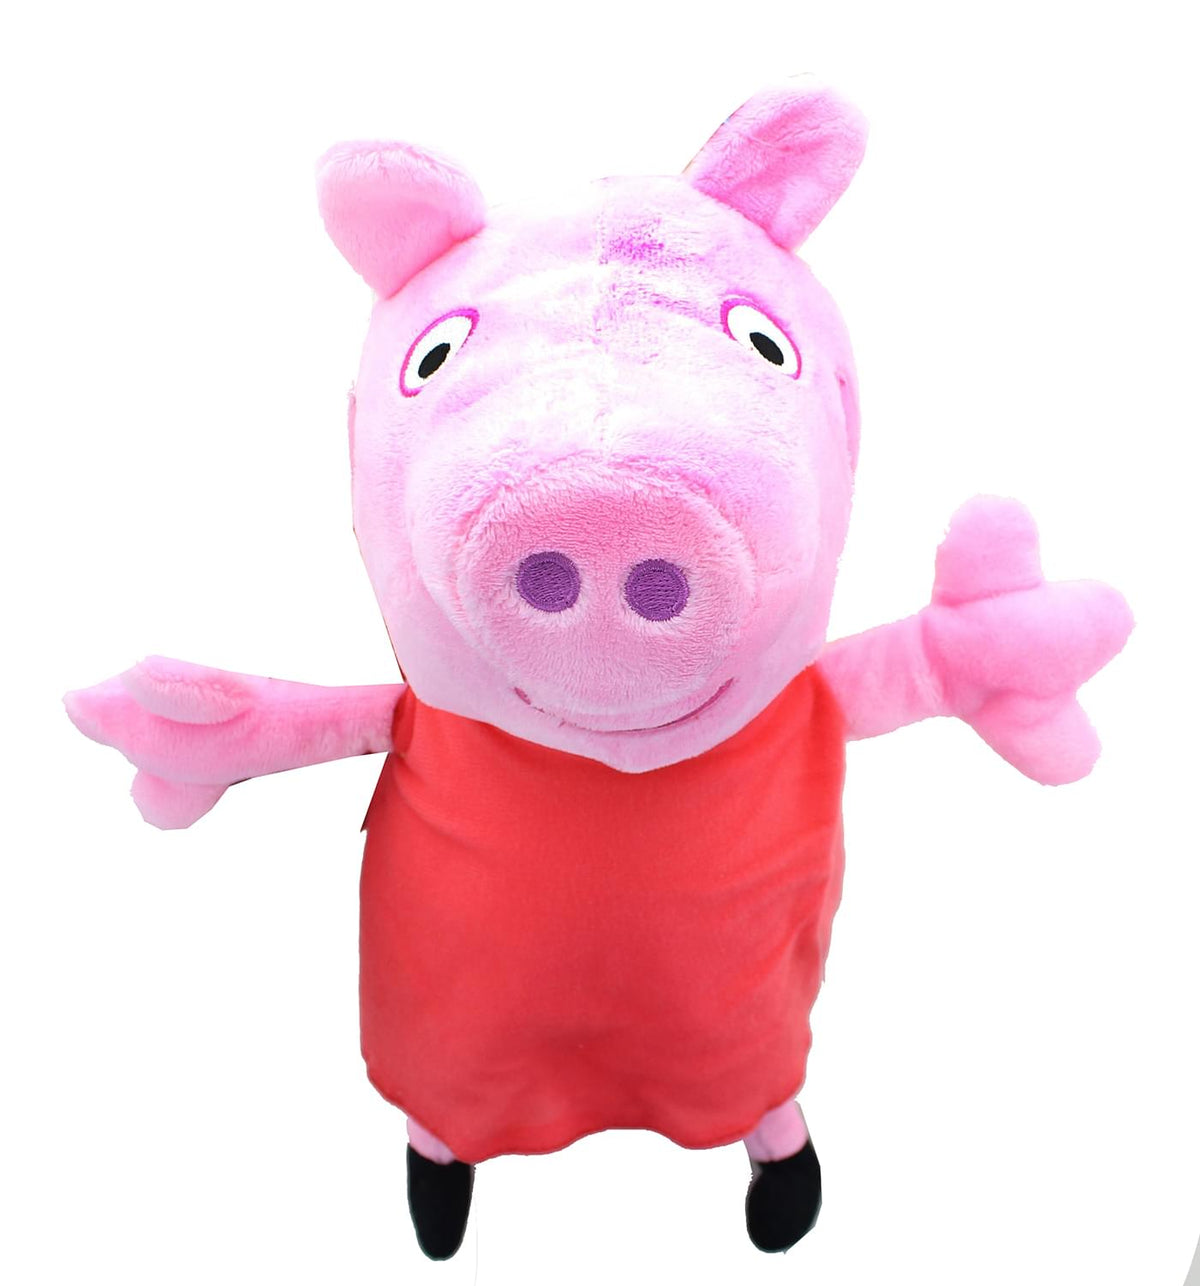 Peppa Pig In Red Dress 13.5 Inch Character Plush